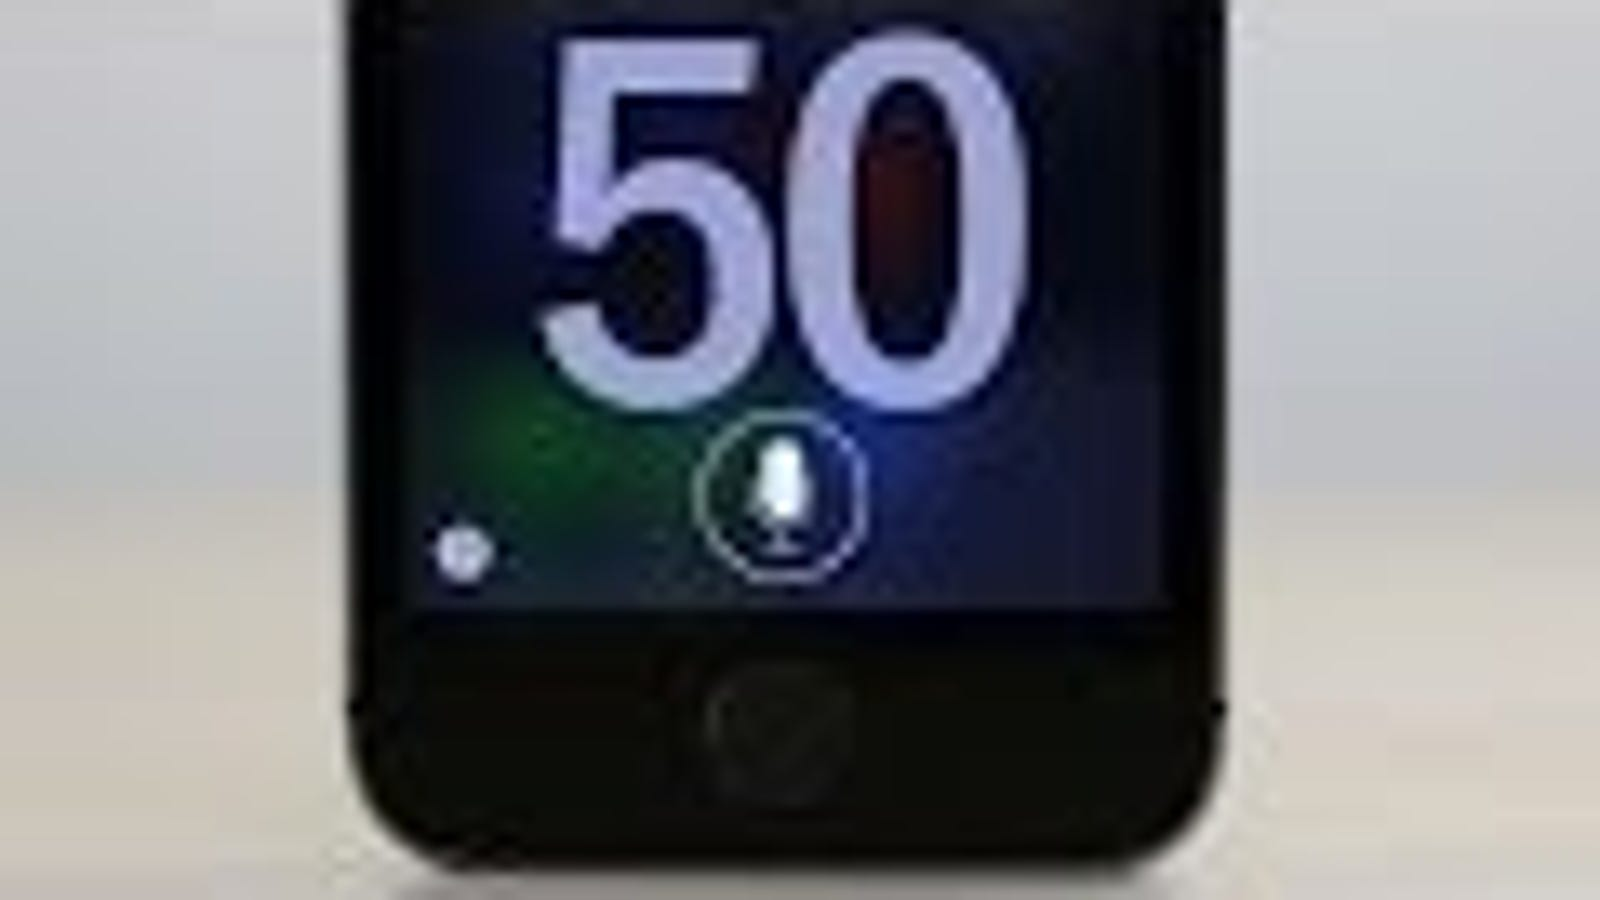 Watch 50 Siri and Google Now Voice Commands in Action